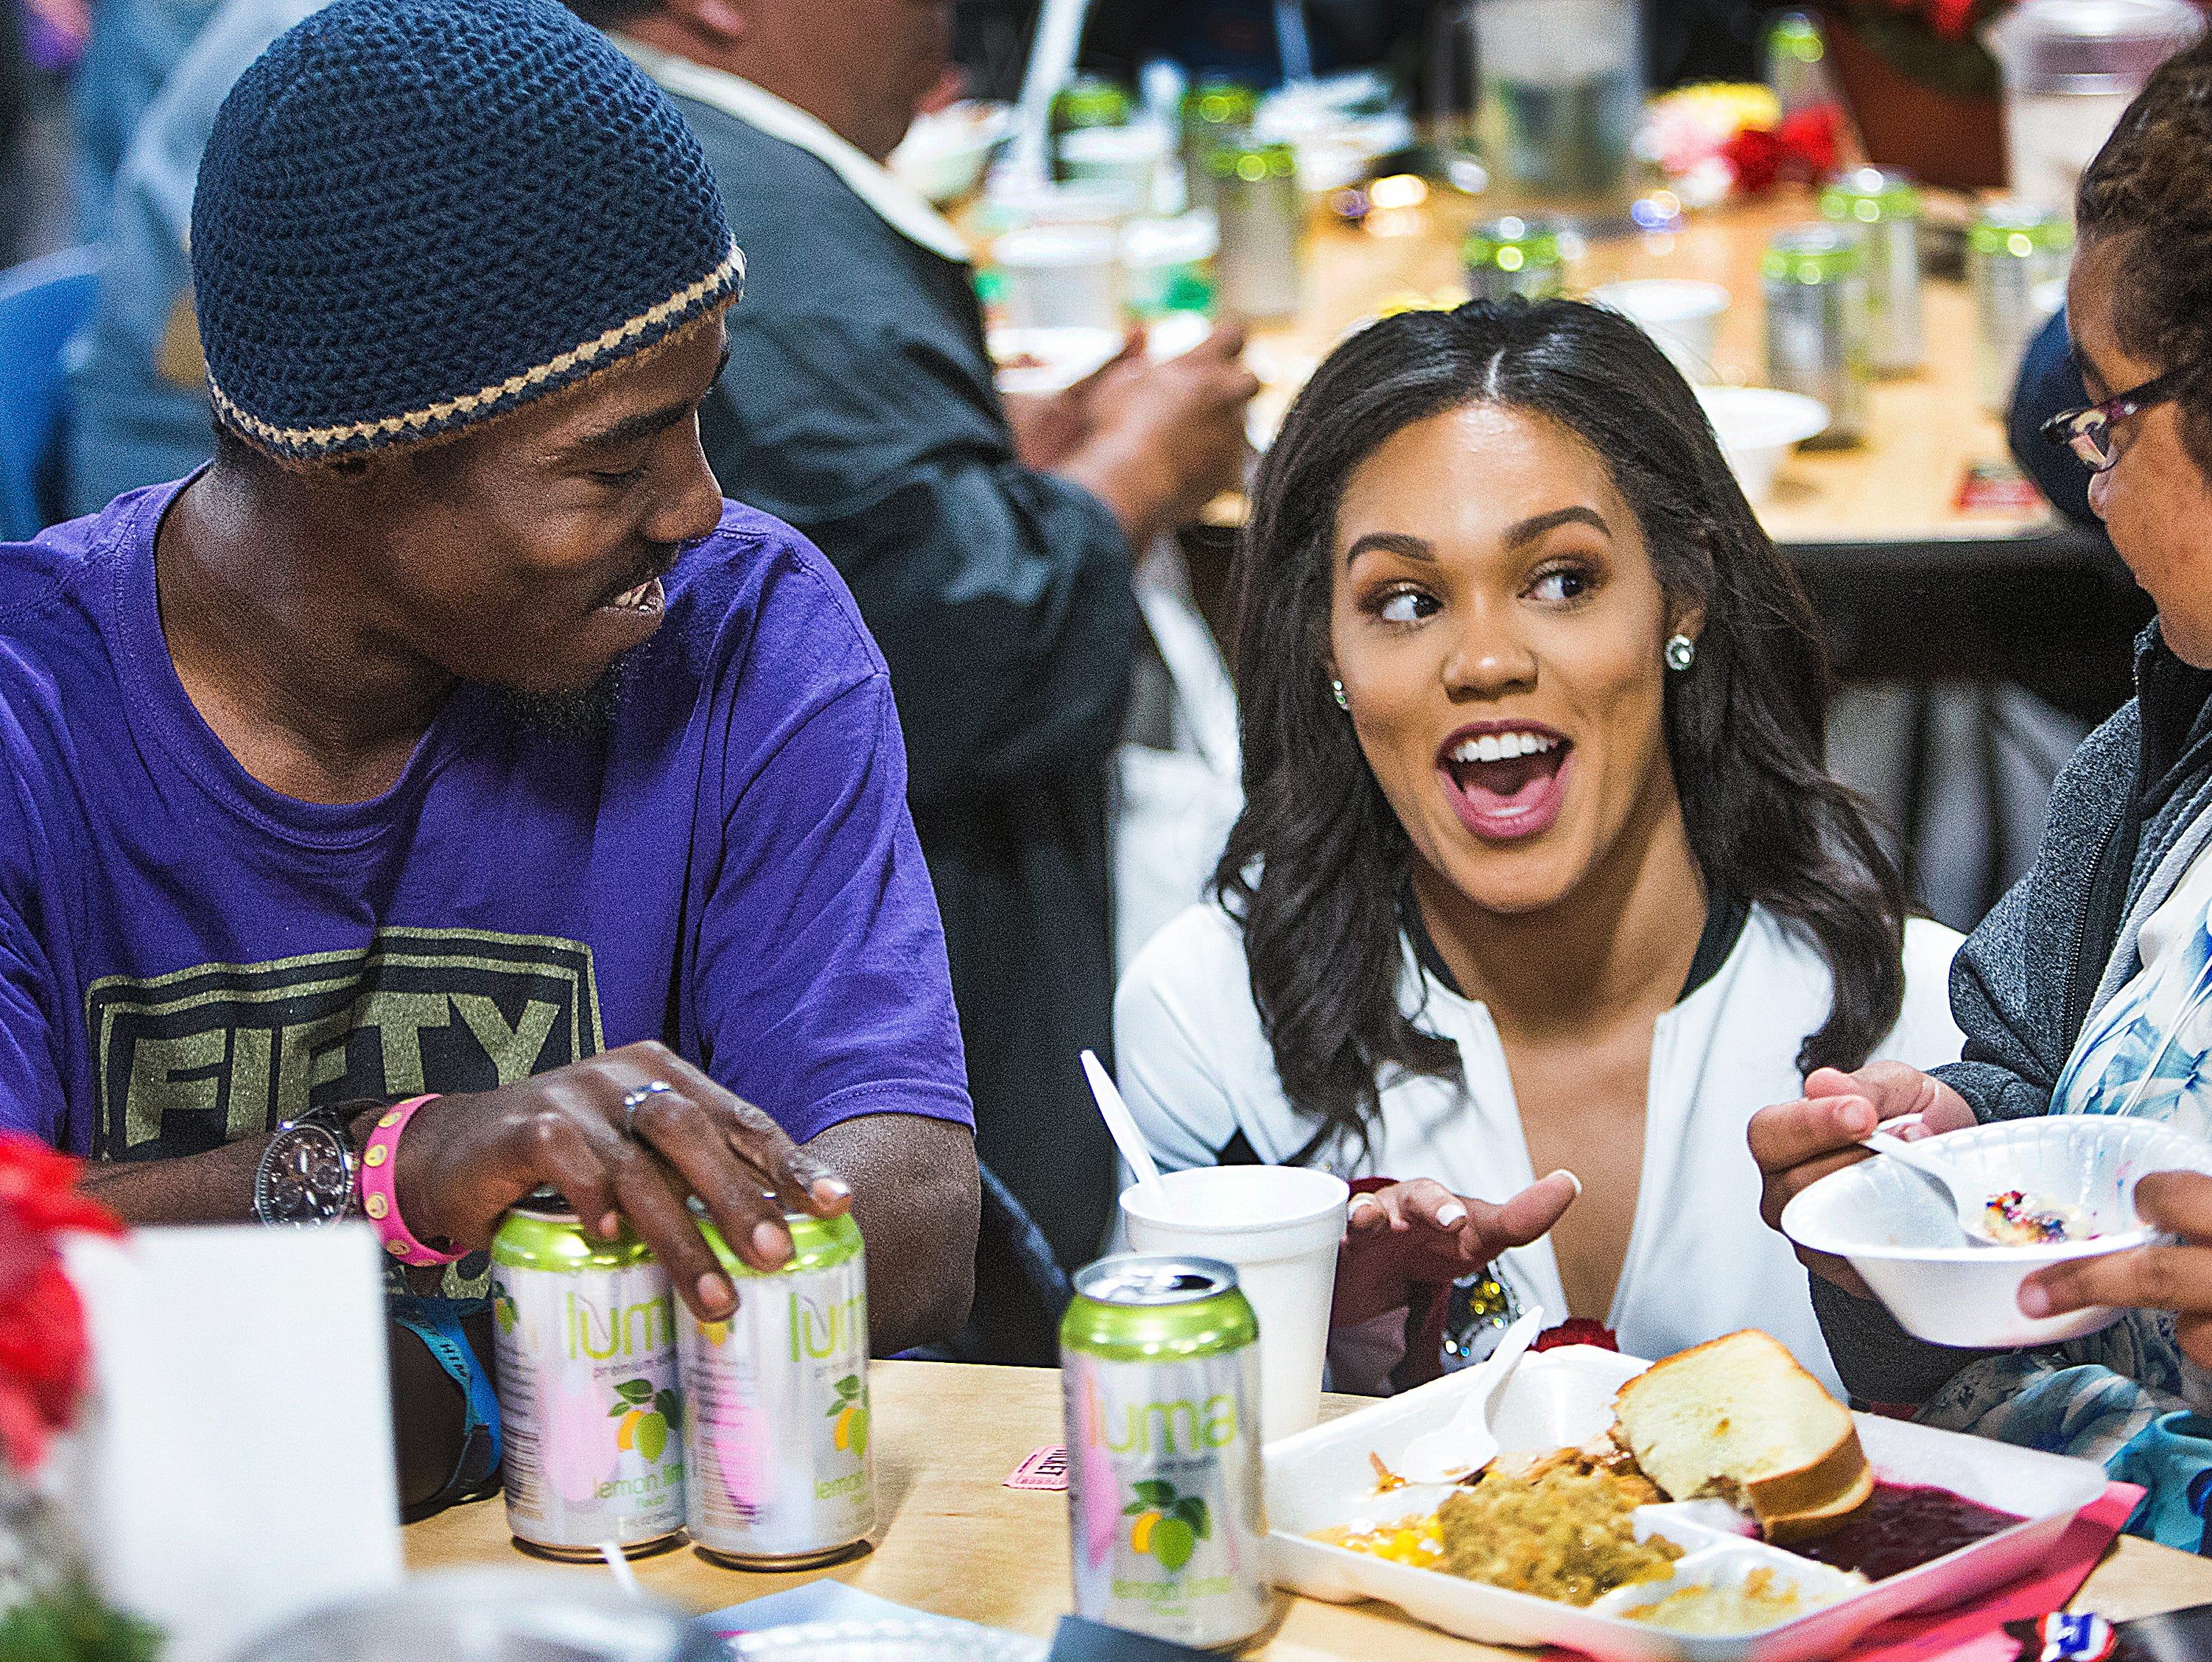 Arizona Cardinals cheerleader Stephanie Hardy, middle, speaks with Sandorian Steele, left, and Jessica Rodriguez, right, at the Thanksgiving Day meal served by volunteers for the St. Vincent de Paul Society. Hundreds enjoyed turkey, mashed pototaoes and pumpkin pie at the Human Services Campus Dining Room in Phoenix, Thursday, November 22, 2018.